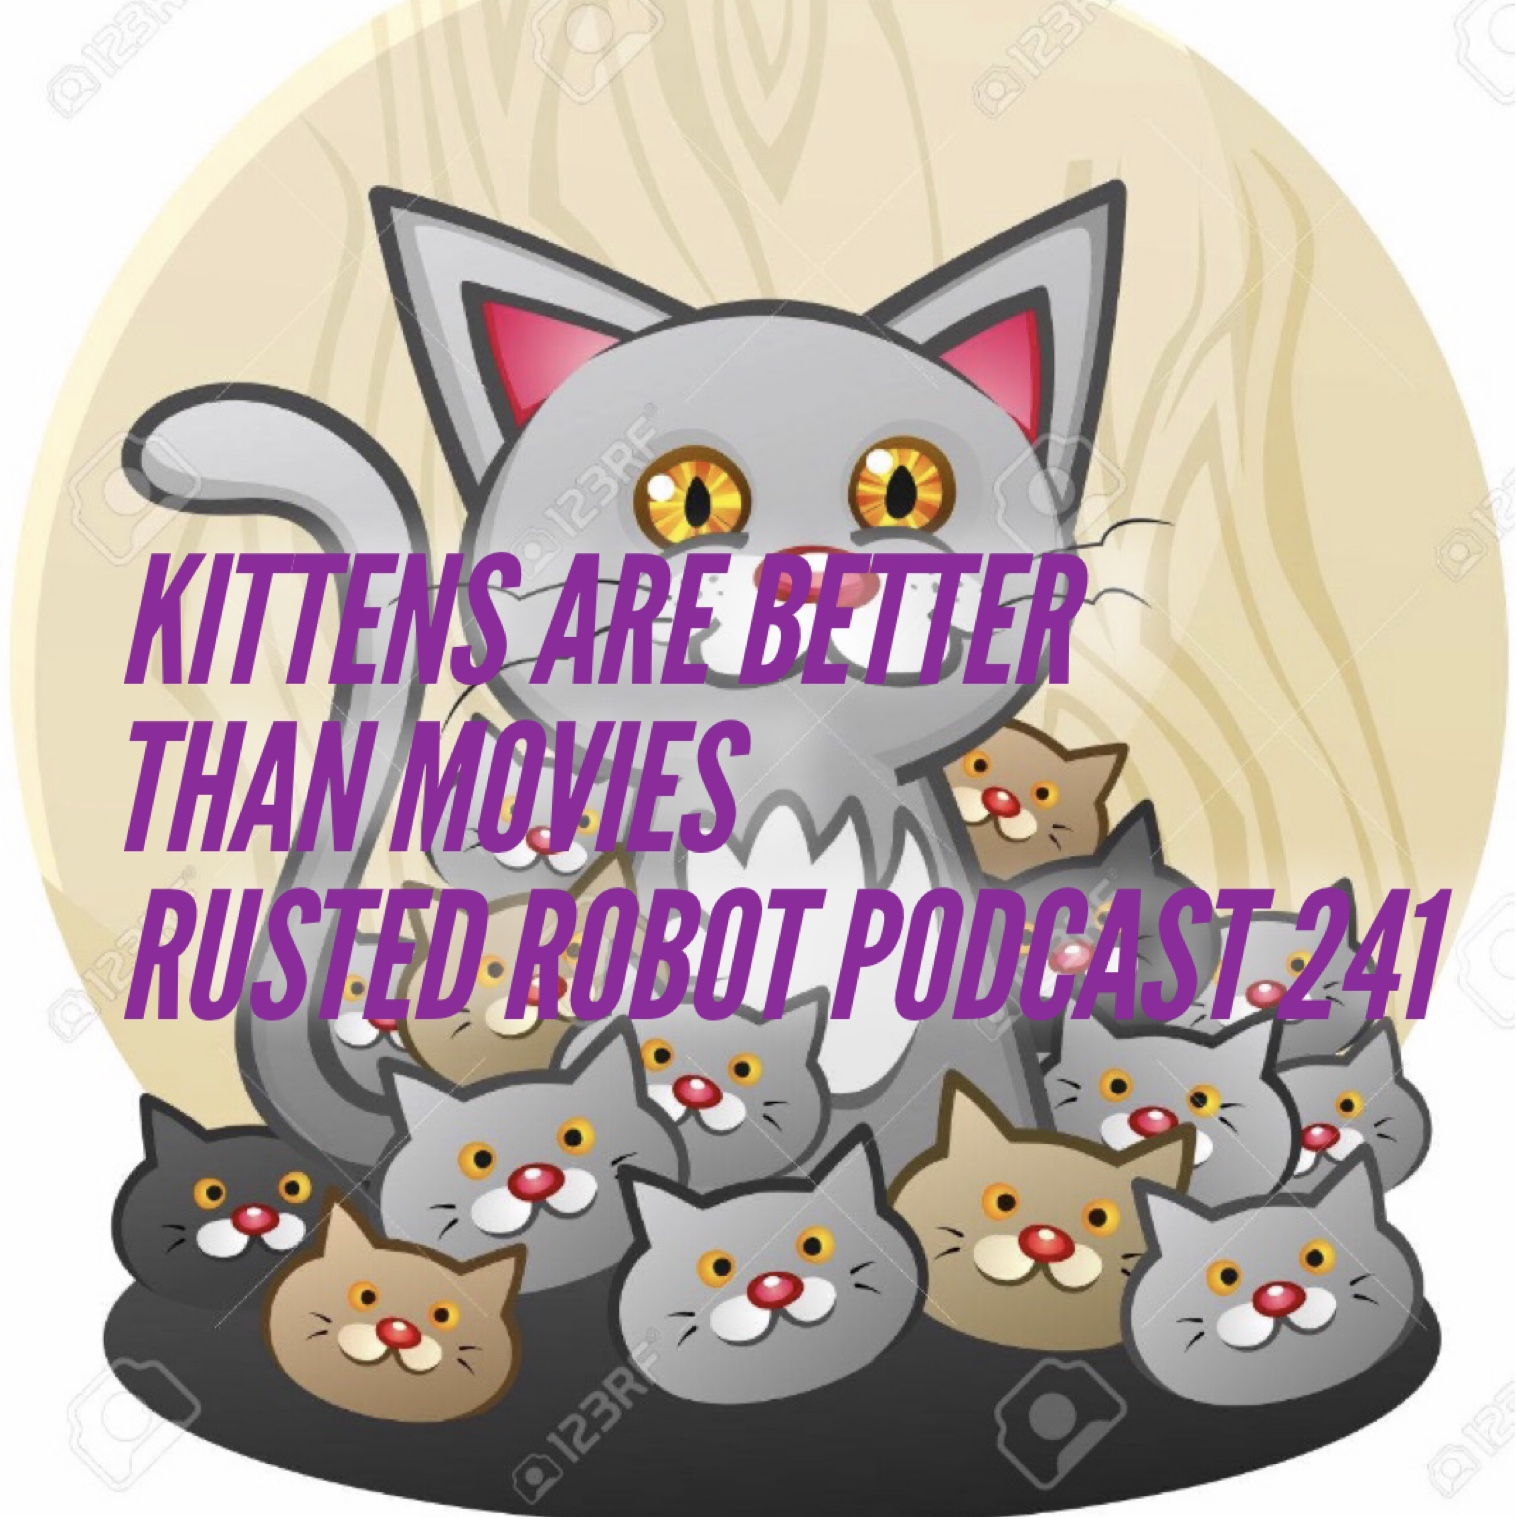 Kittens Are Better Than Movies - 241